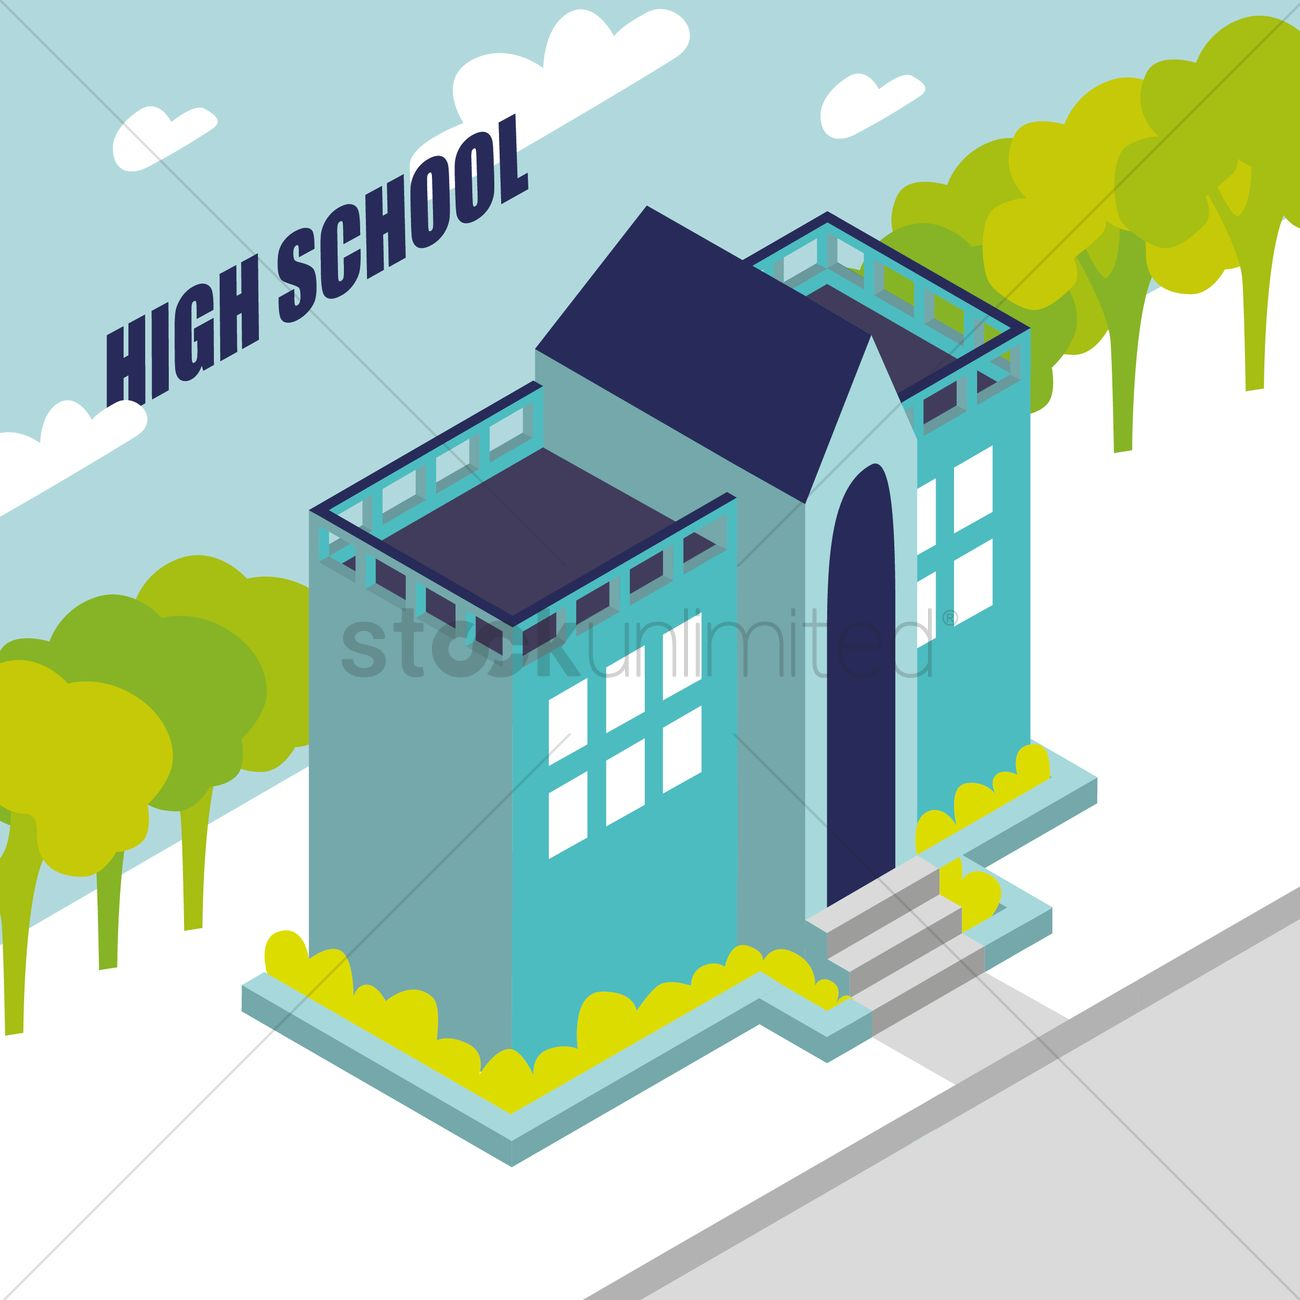 1300x1300 High School Vector Image